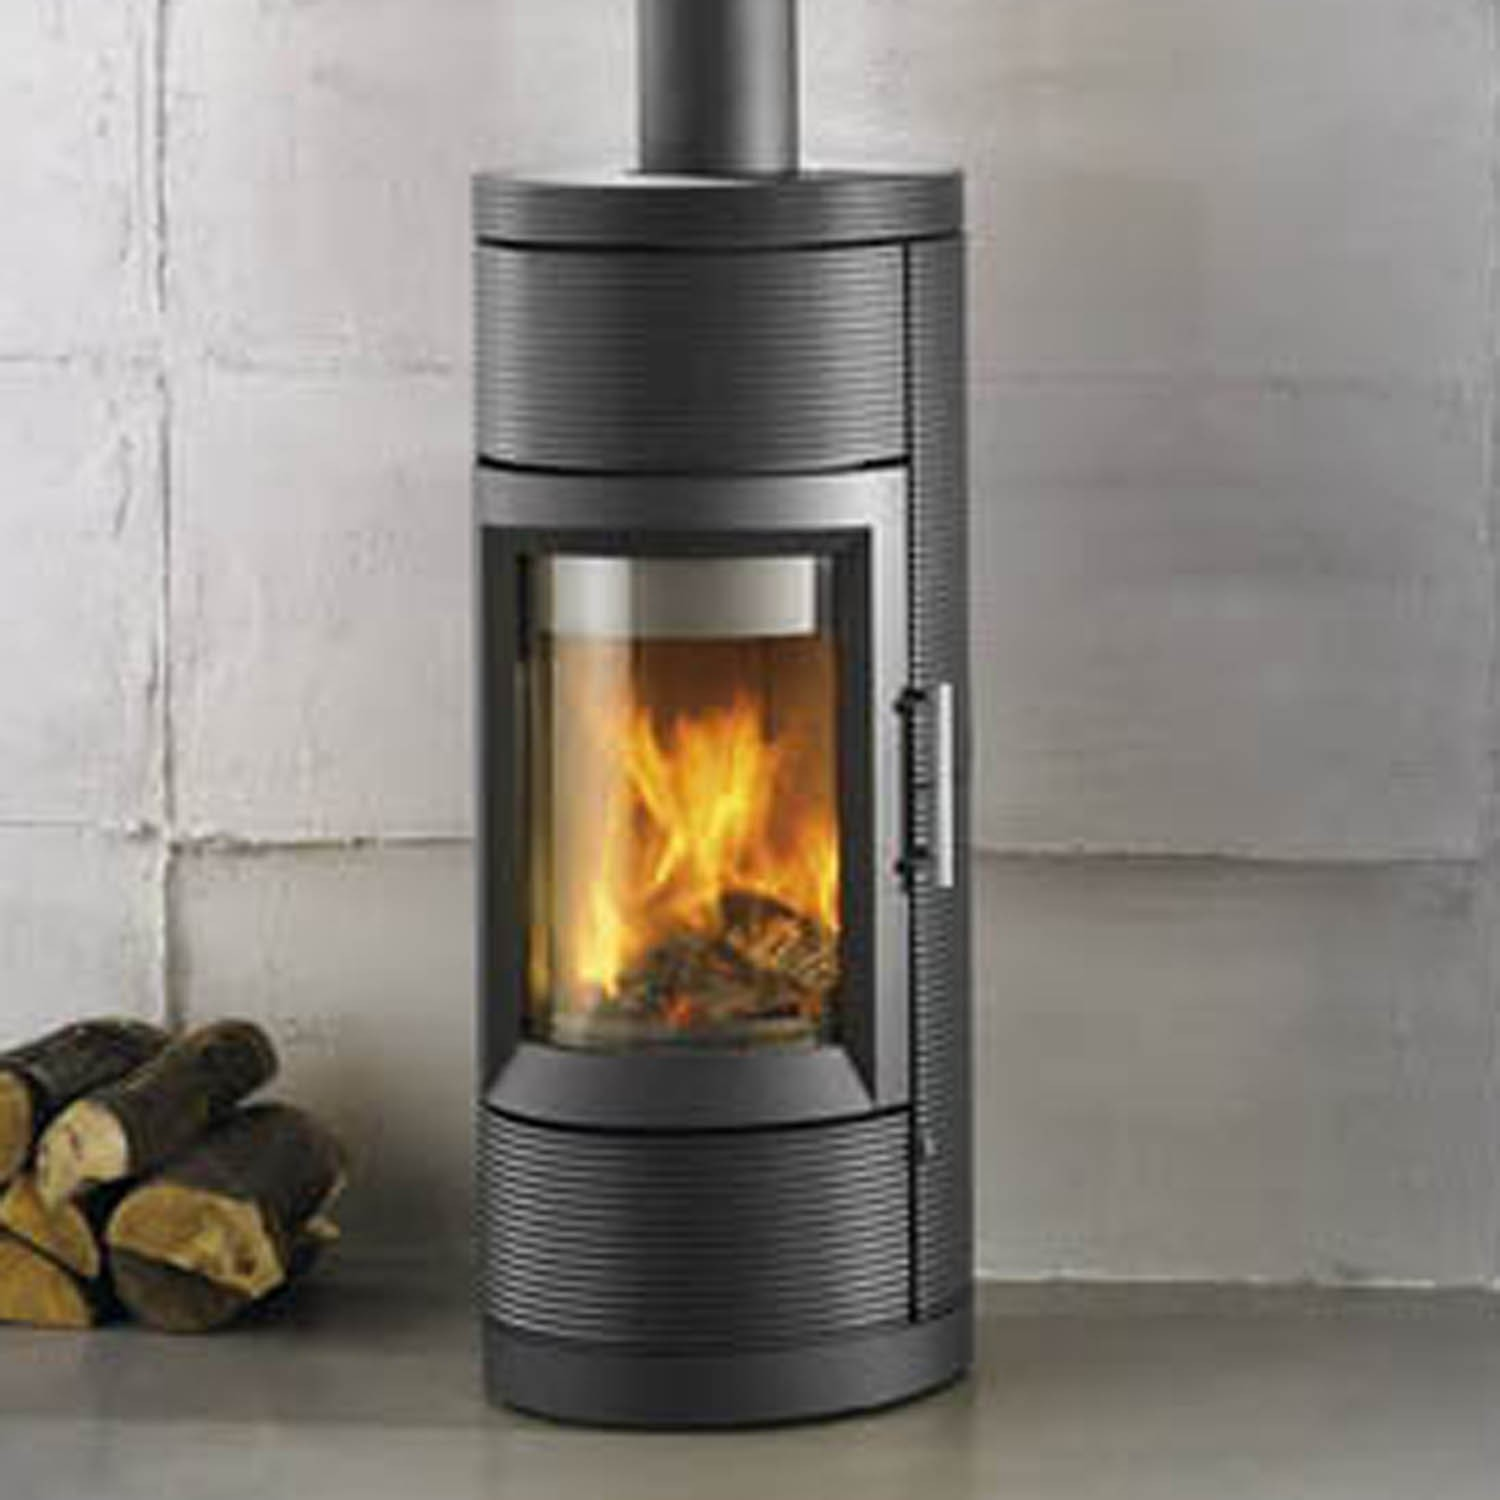 high fireplace woodstove fireplaces despite products pe size use htm standing this engineered burning its heat vista fplc a pacific powerful stoves free ease wood freestanding fs is efficiency performance of compact slideshow energy and output for